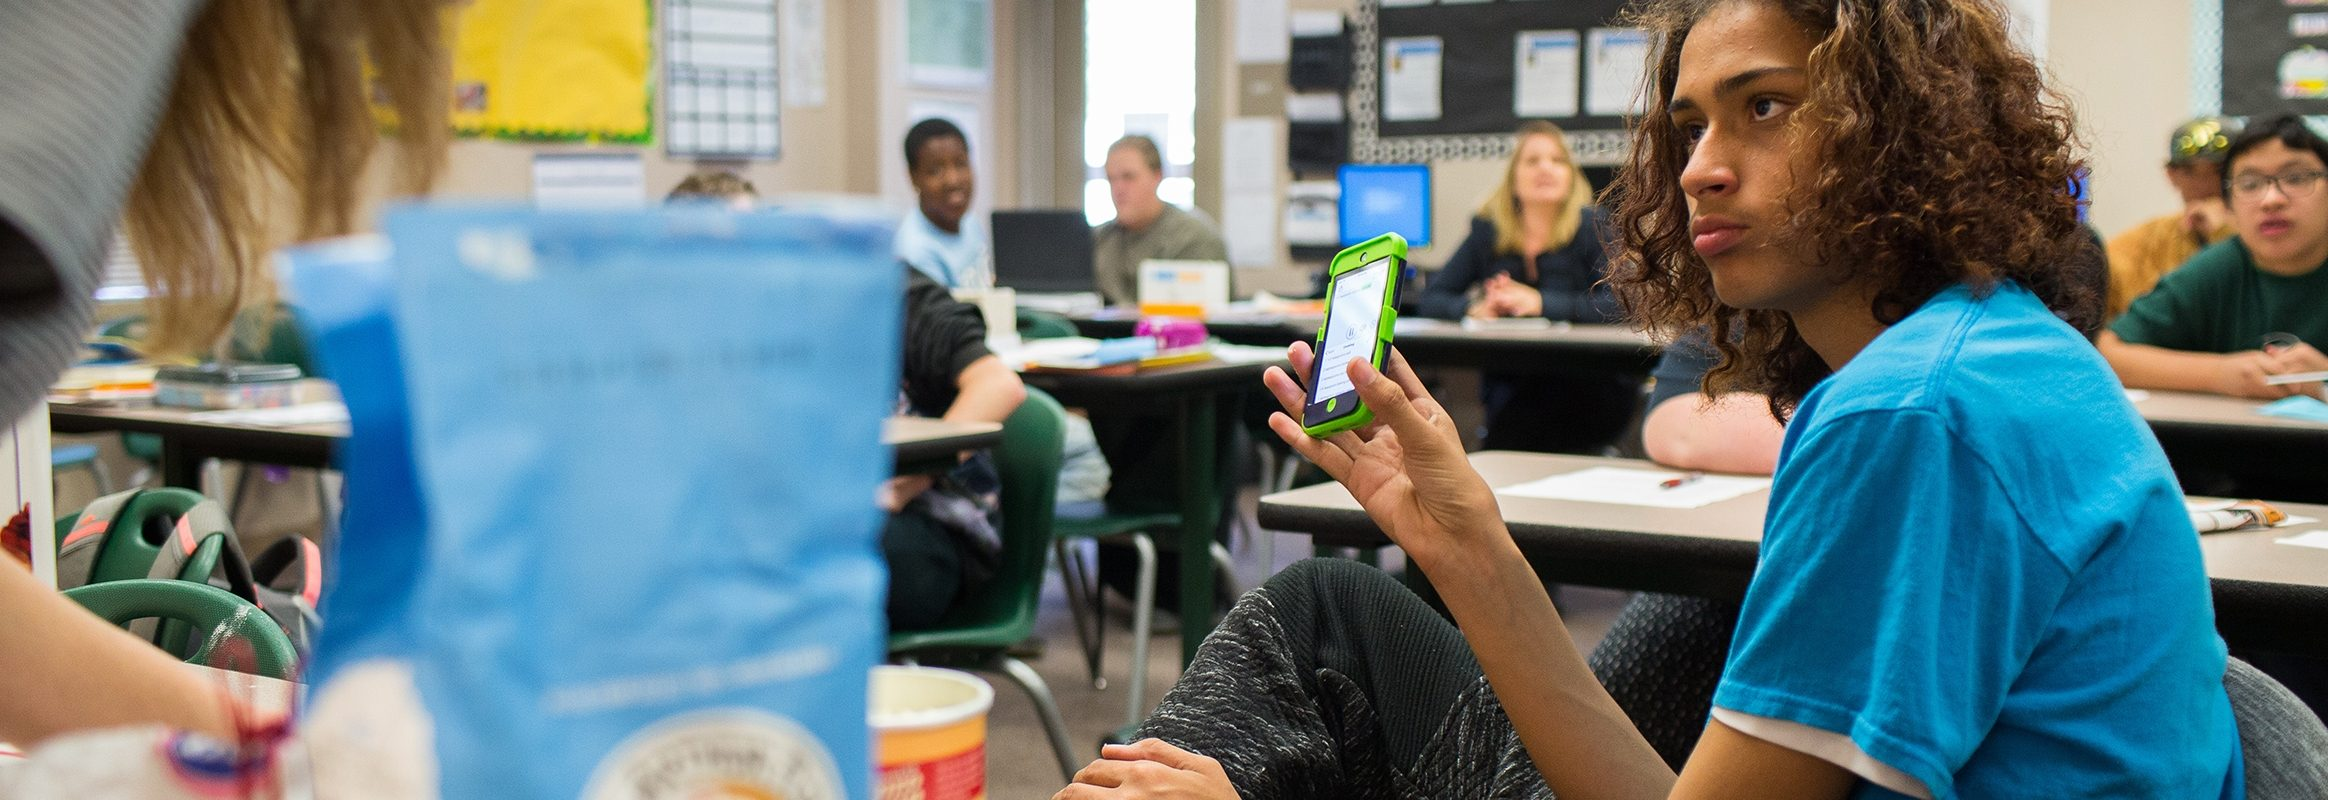 Boy using iPhone in classroom